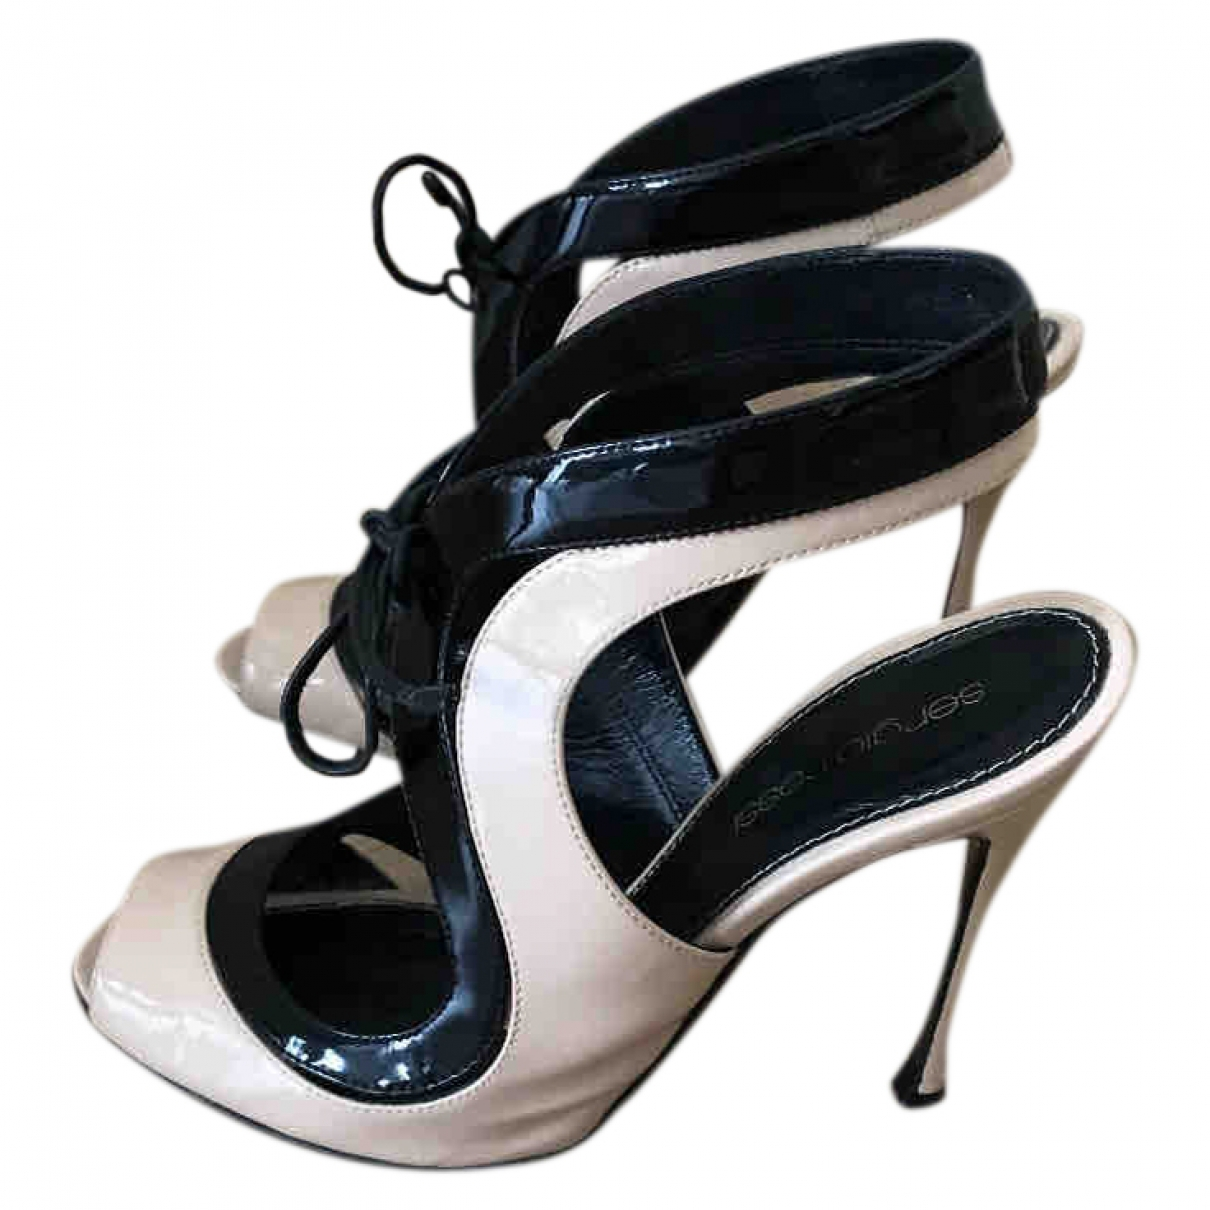 Sergio Rossi \N Beige Patent leather Sandals for Women 36 EU